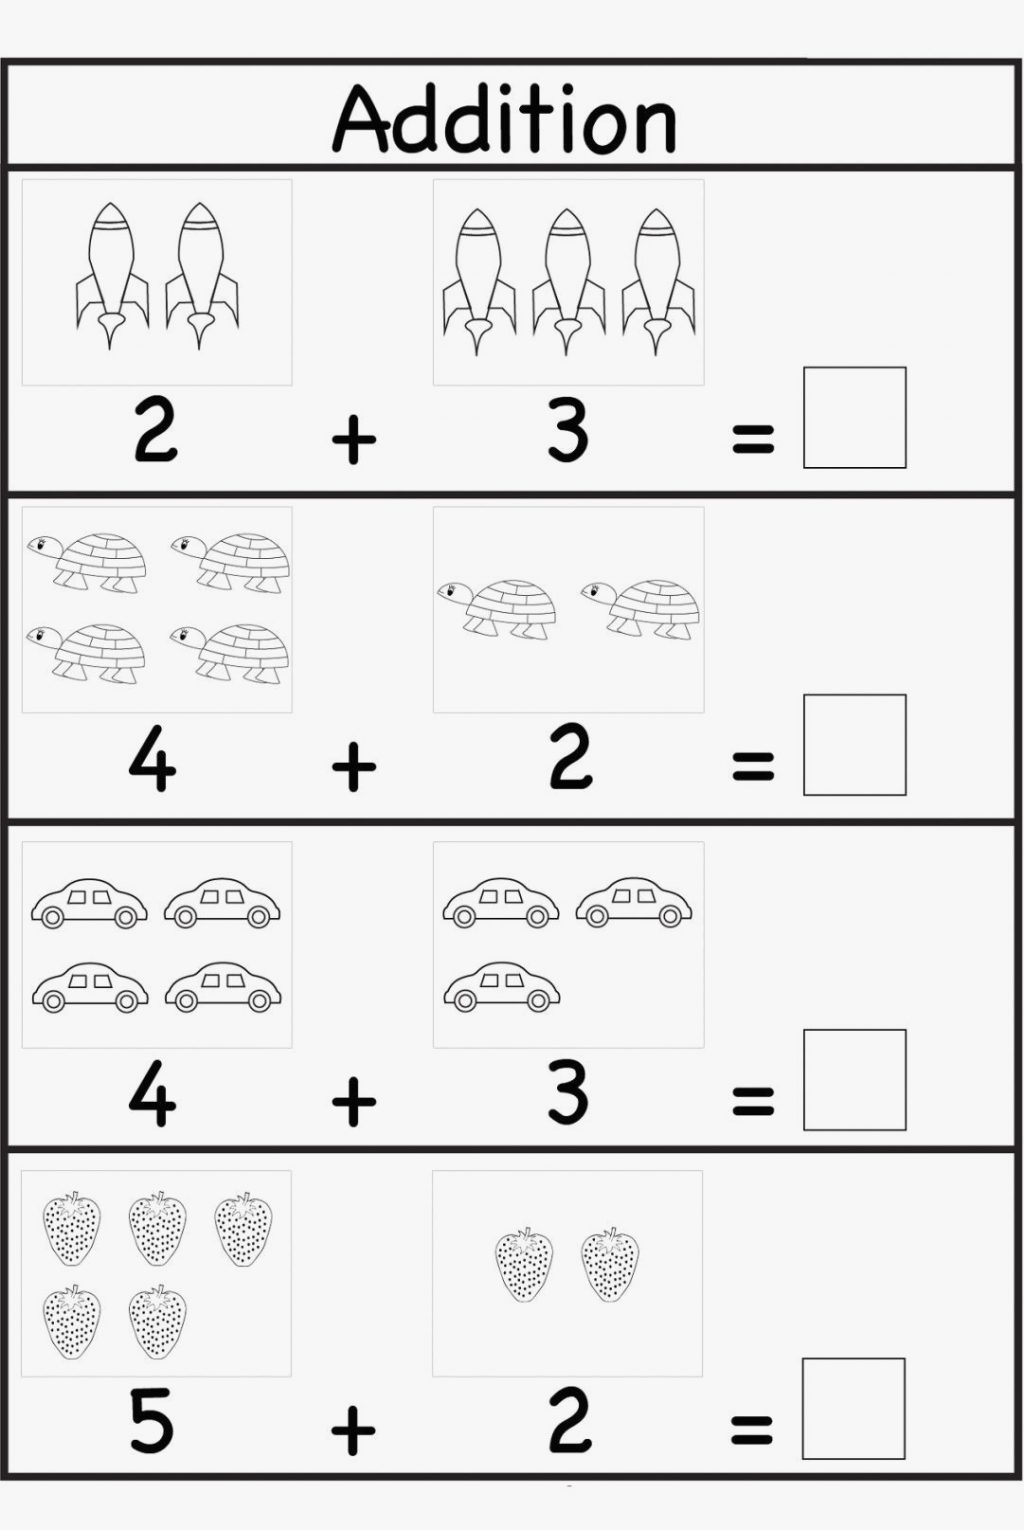 Rning Activities For Year Olds Printables Elegant Learning with Alphabet Worksheets For 5 Year Olds